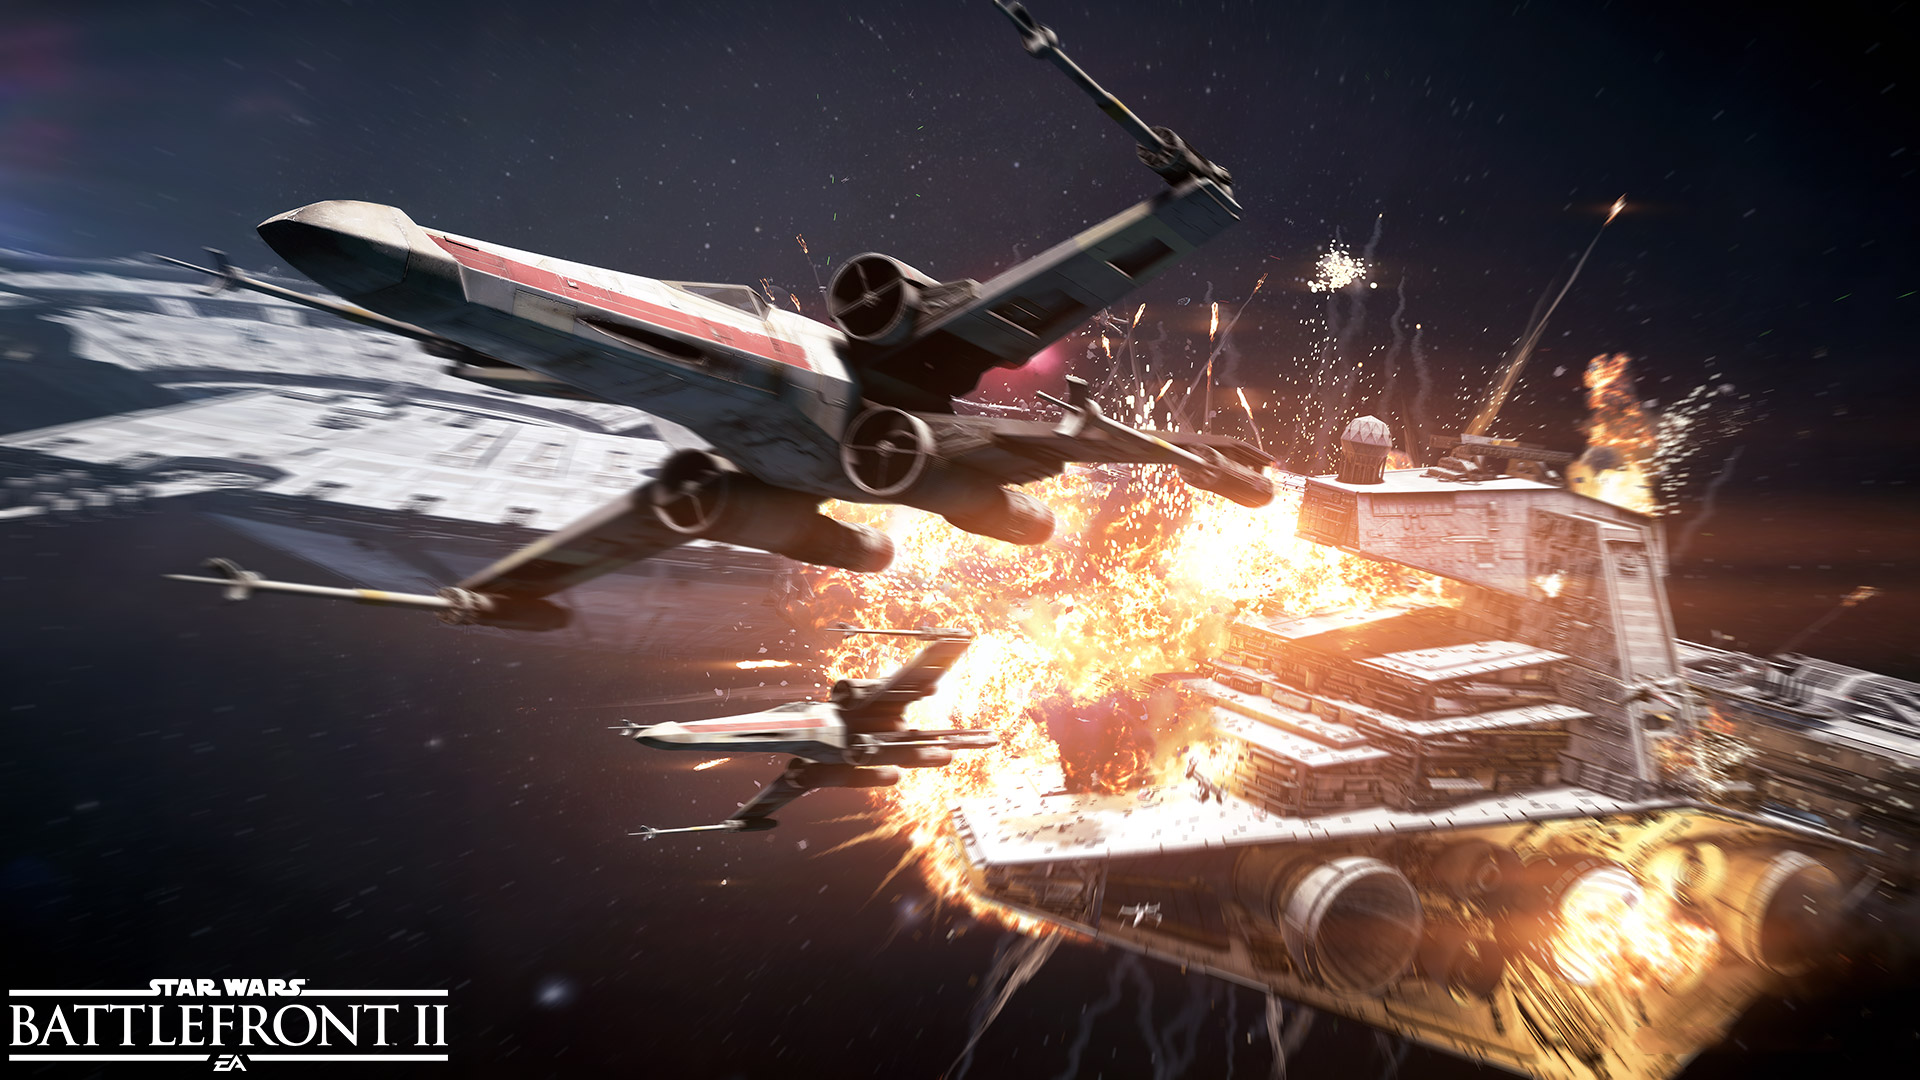 Free Star Wars: Battlefront II Wallpaper in 1920x1080